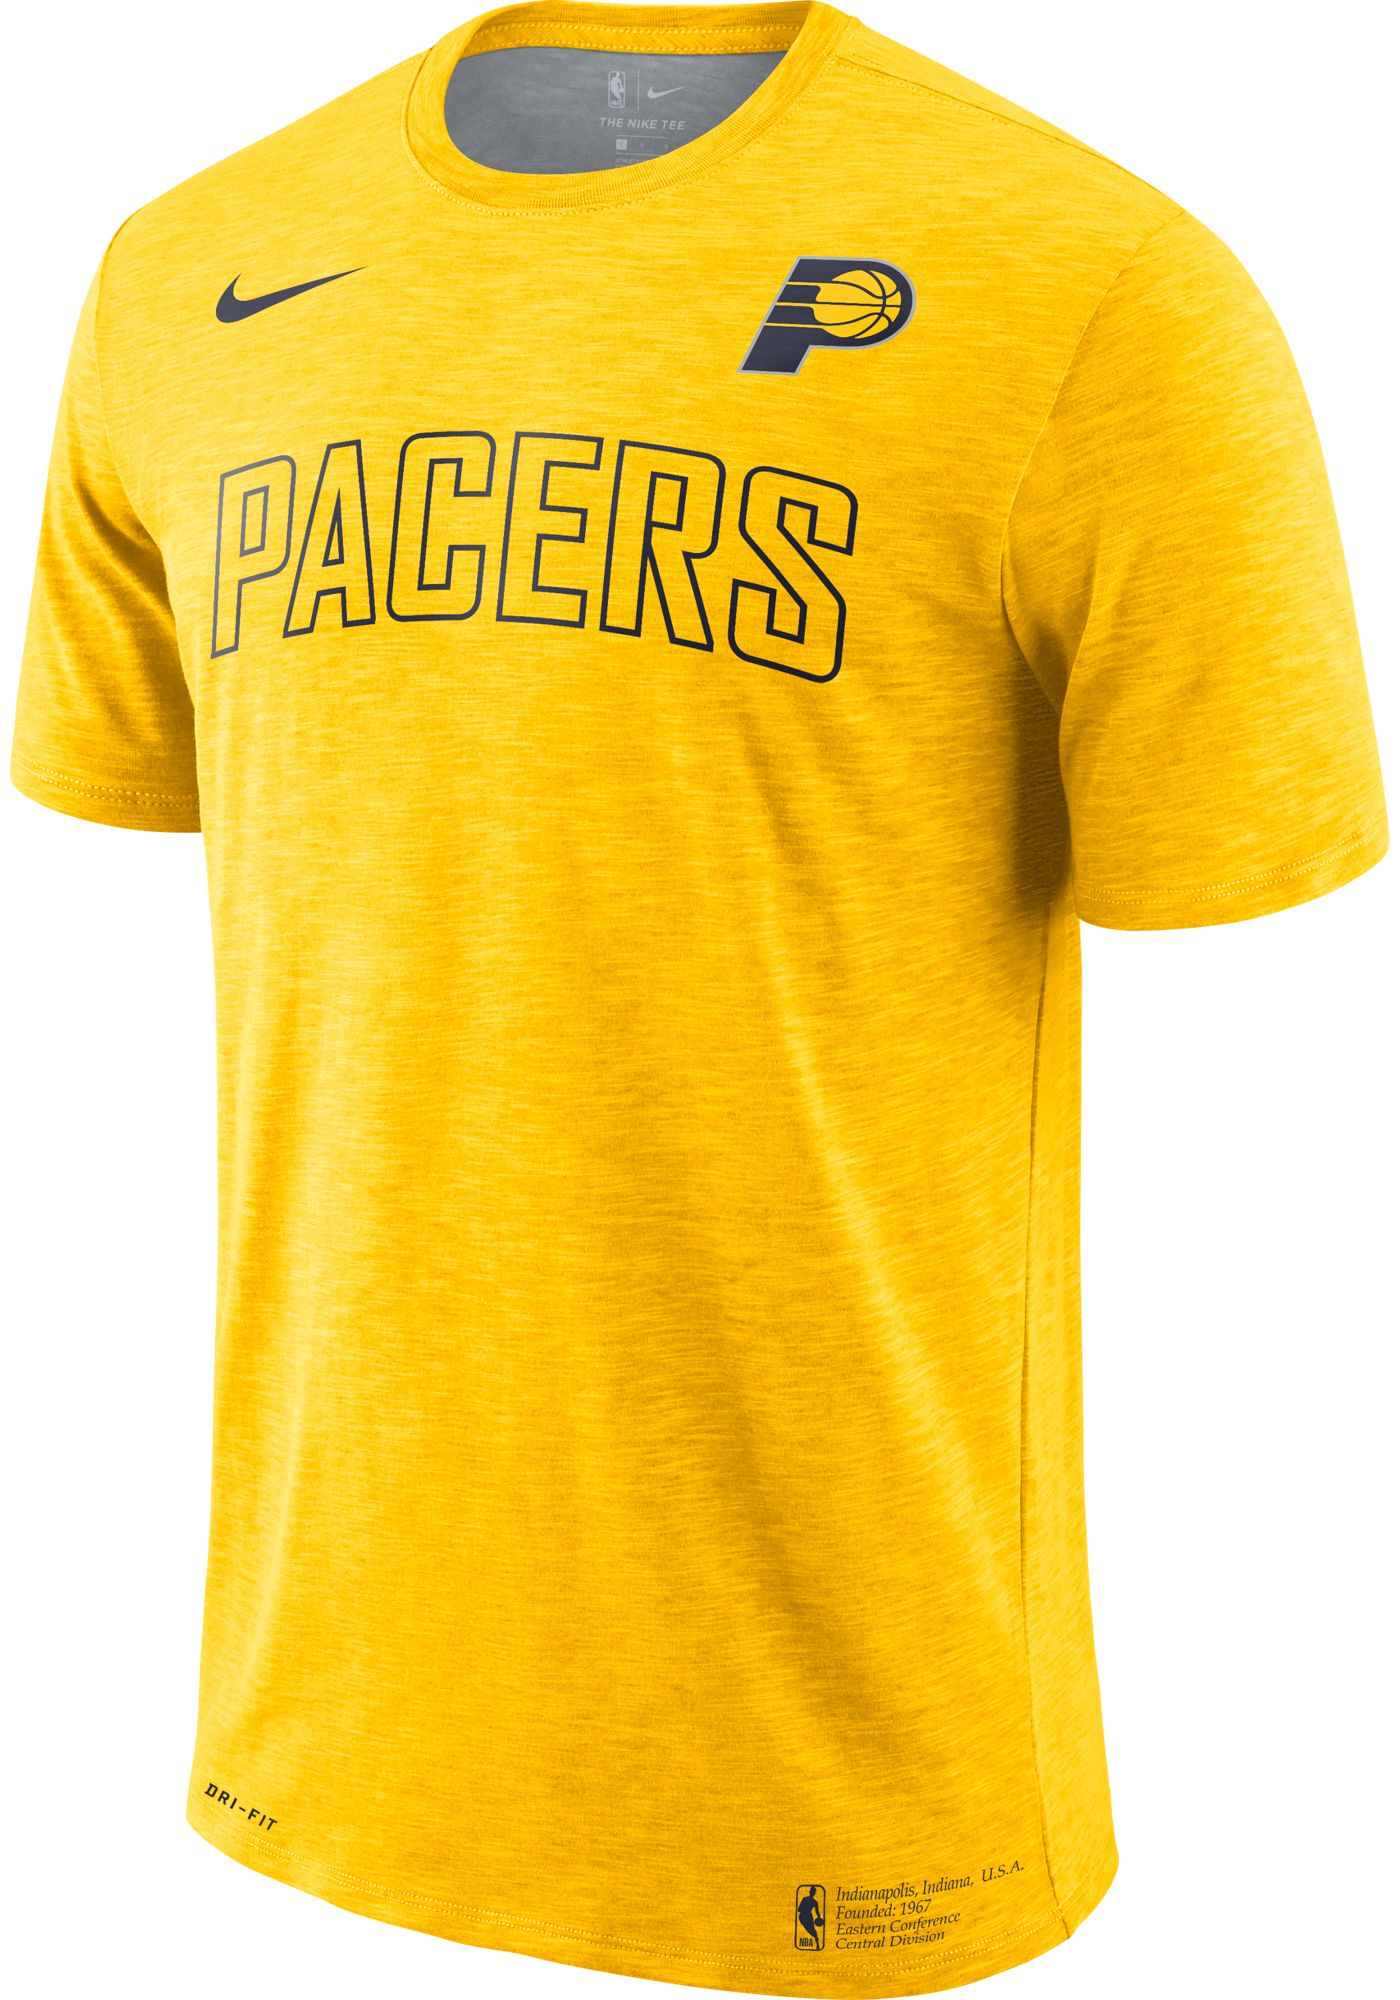 Nike Men's Indiana Pacers Dri-FIT Facility T-Shirt